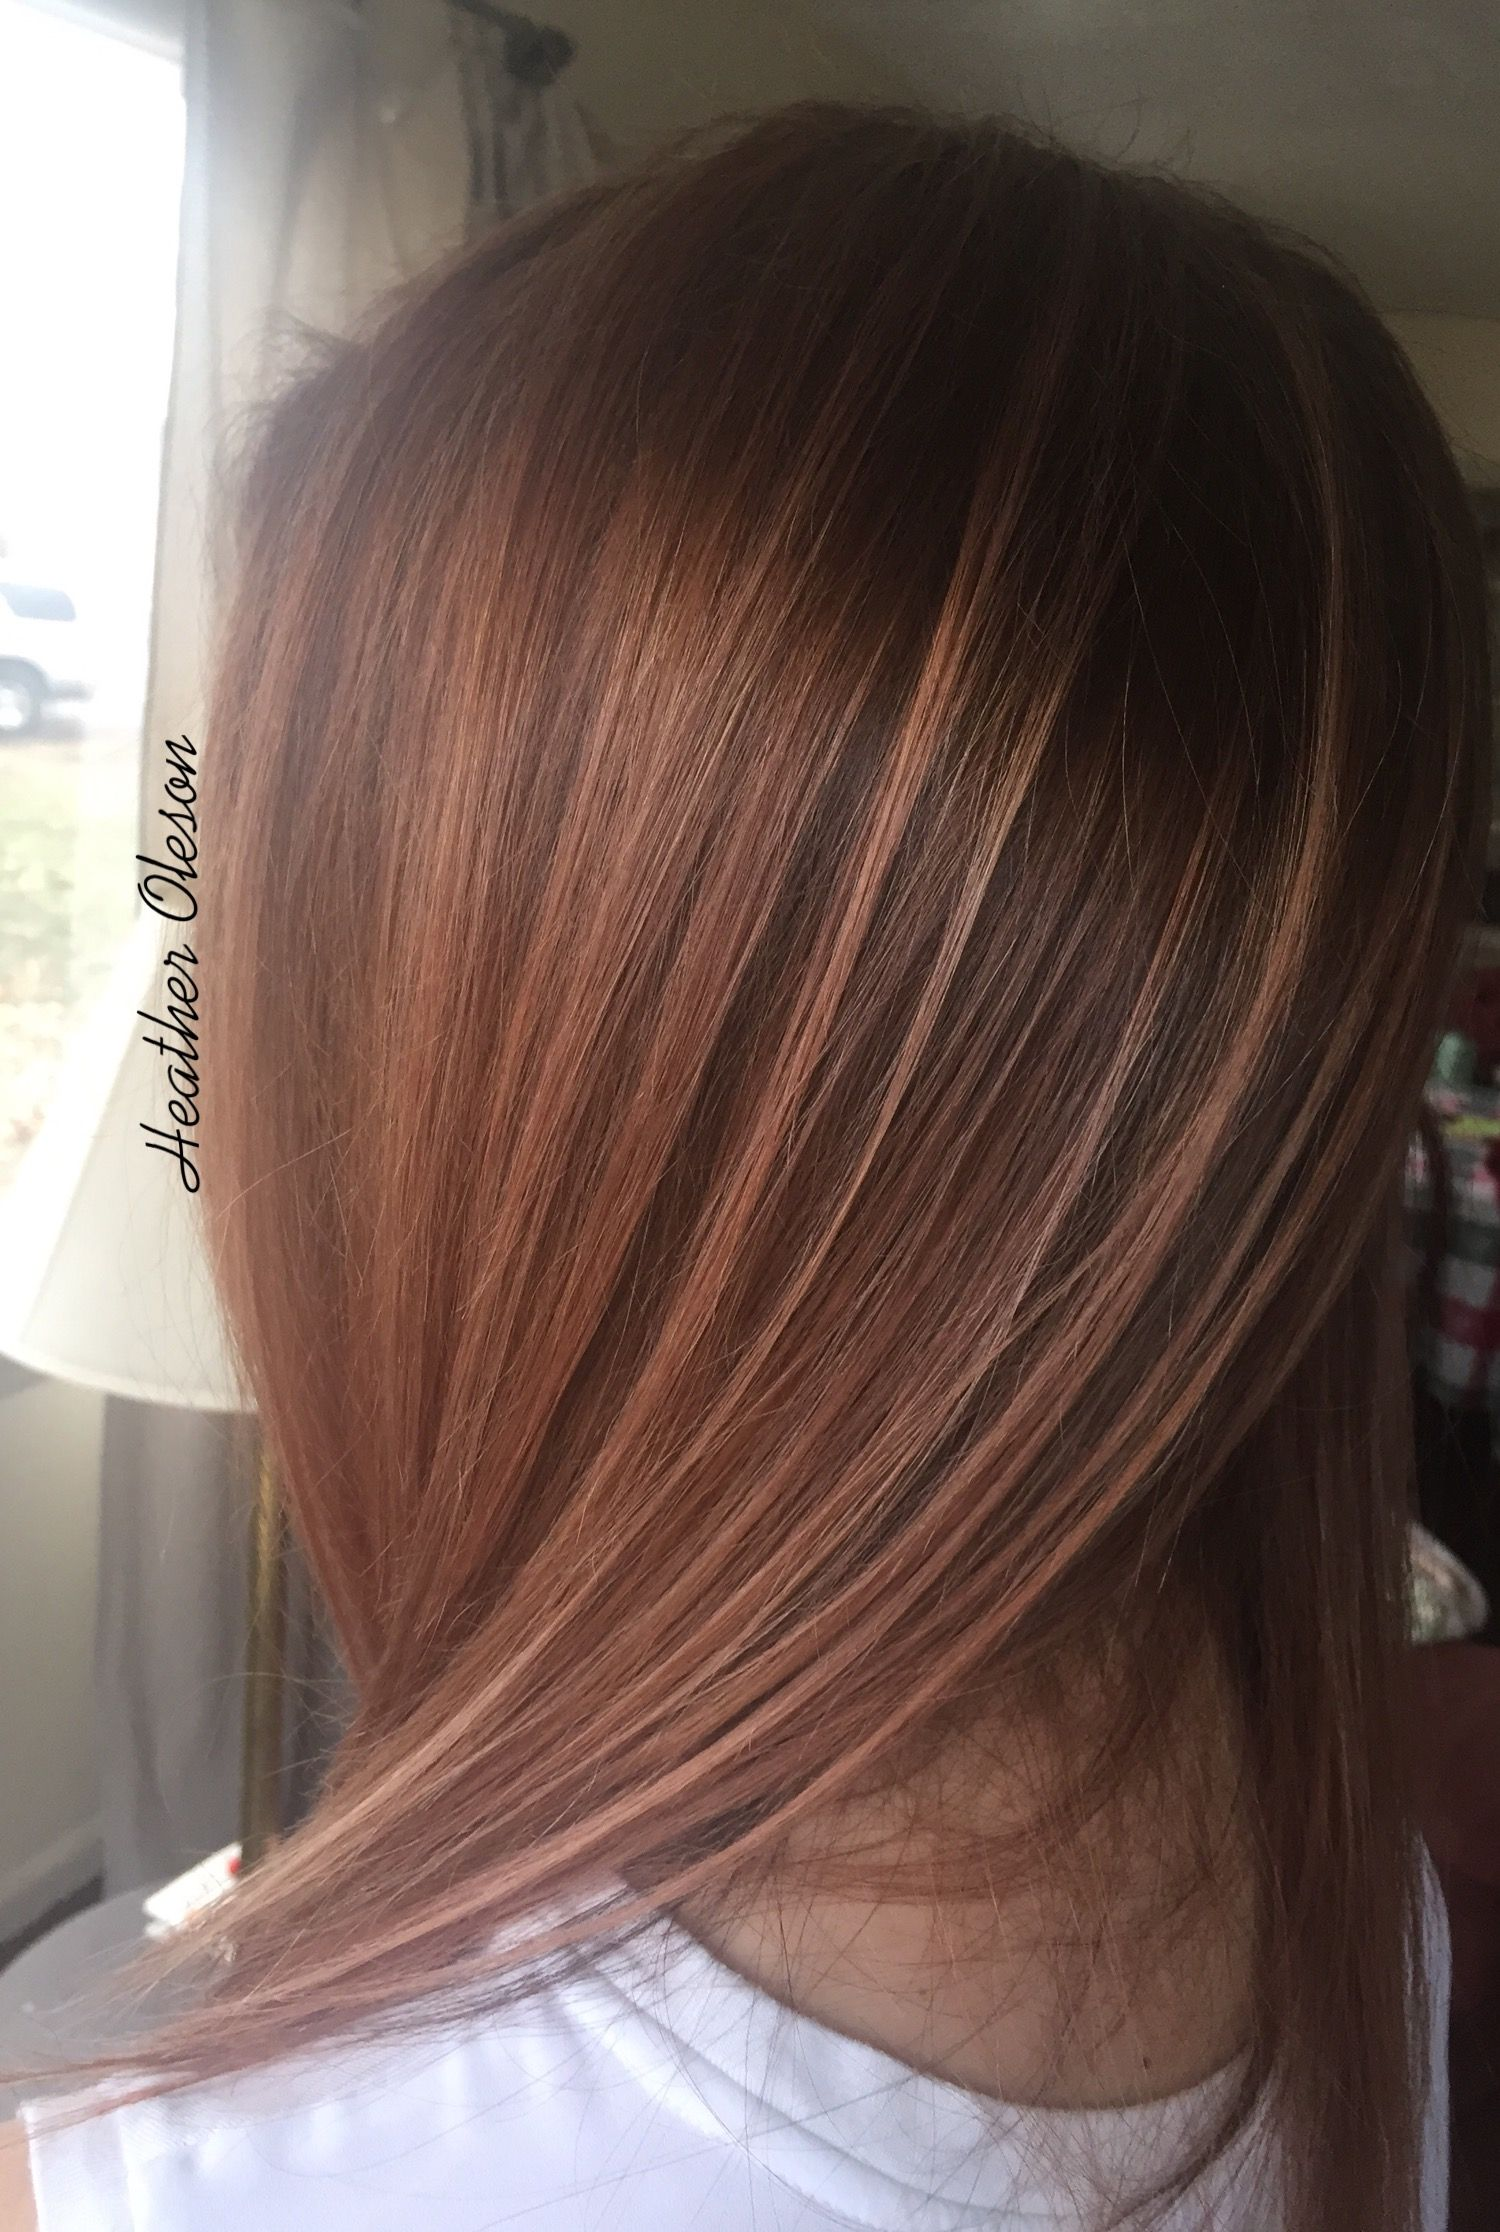 Kenra Color 7sm 8brm And 2 Red Booster On Pre Lightened Hair To